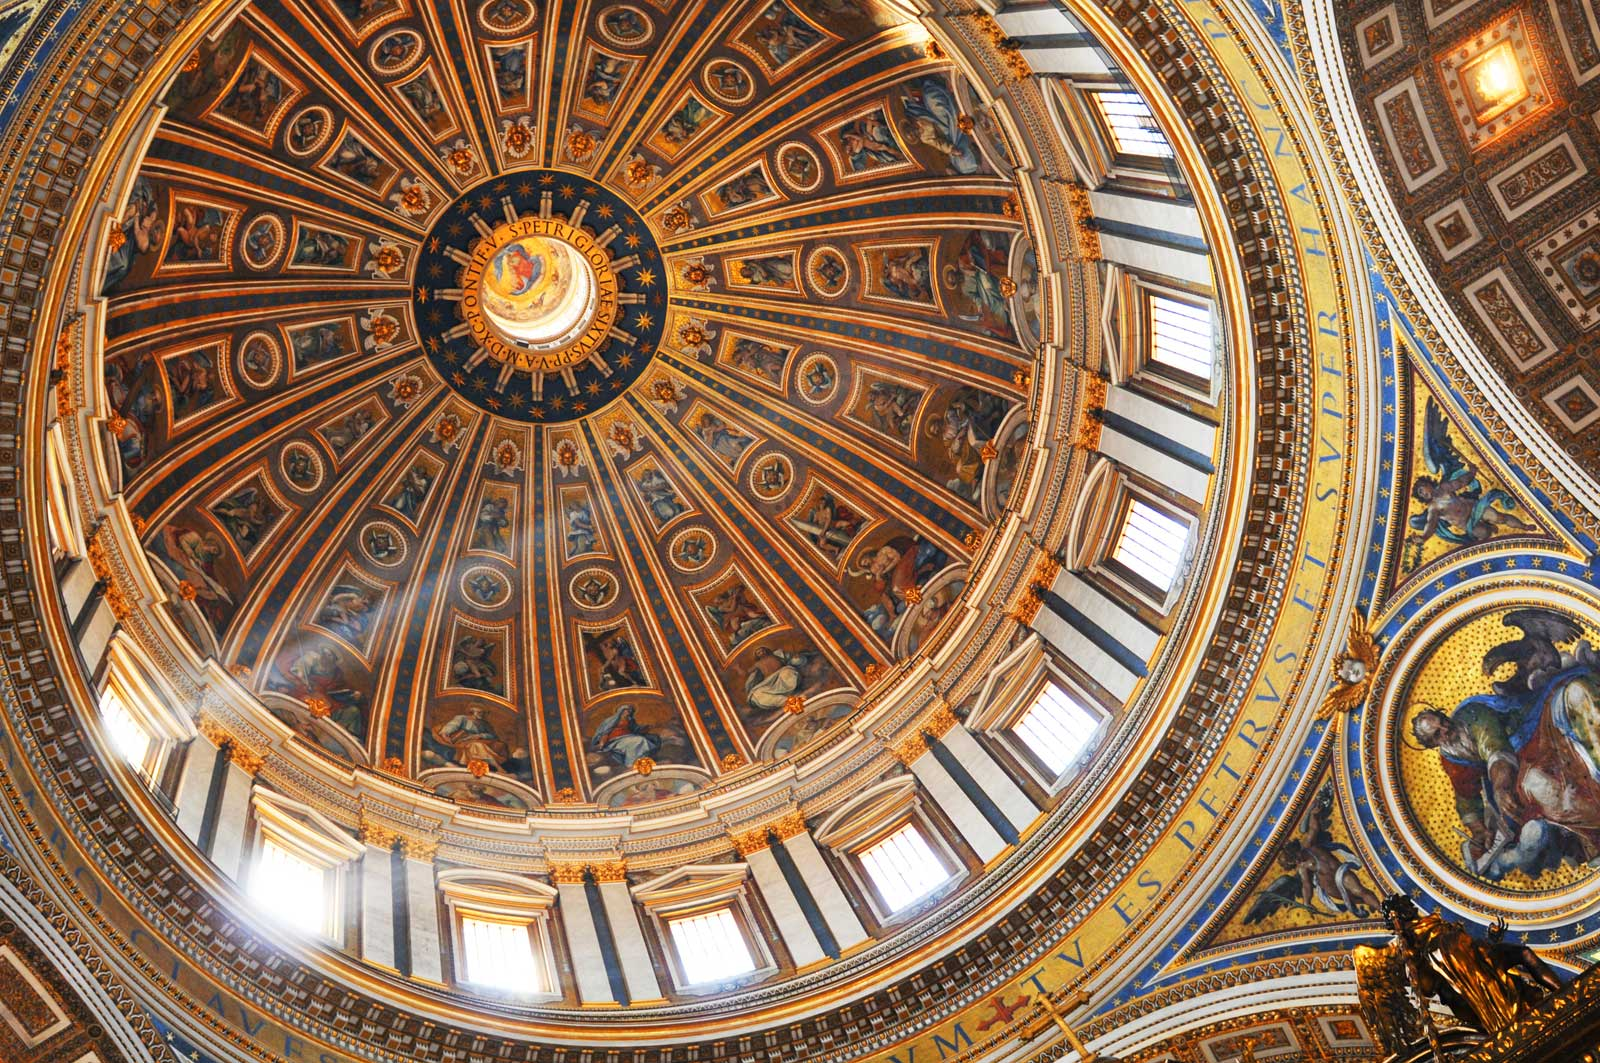 Enjoy Rome - Vatican VIP tour